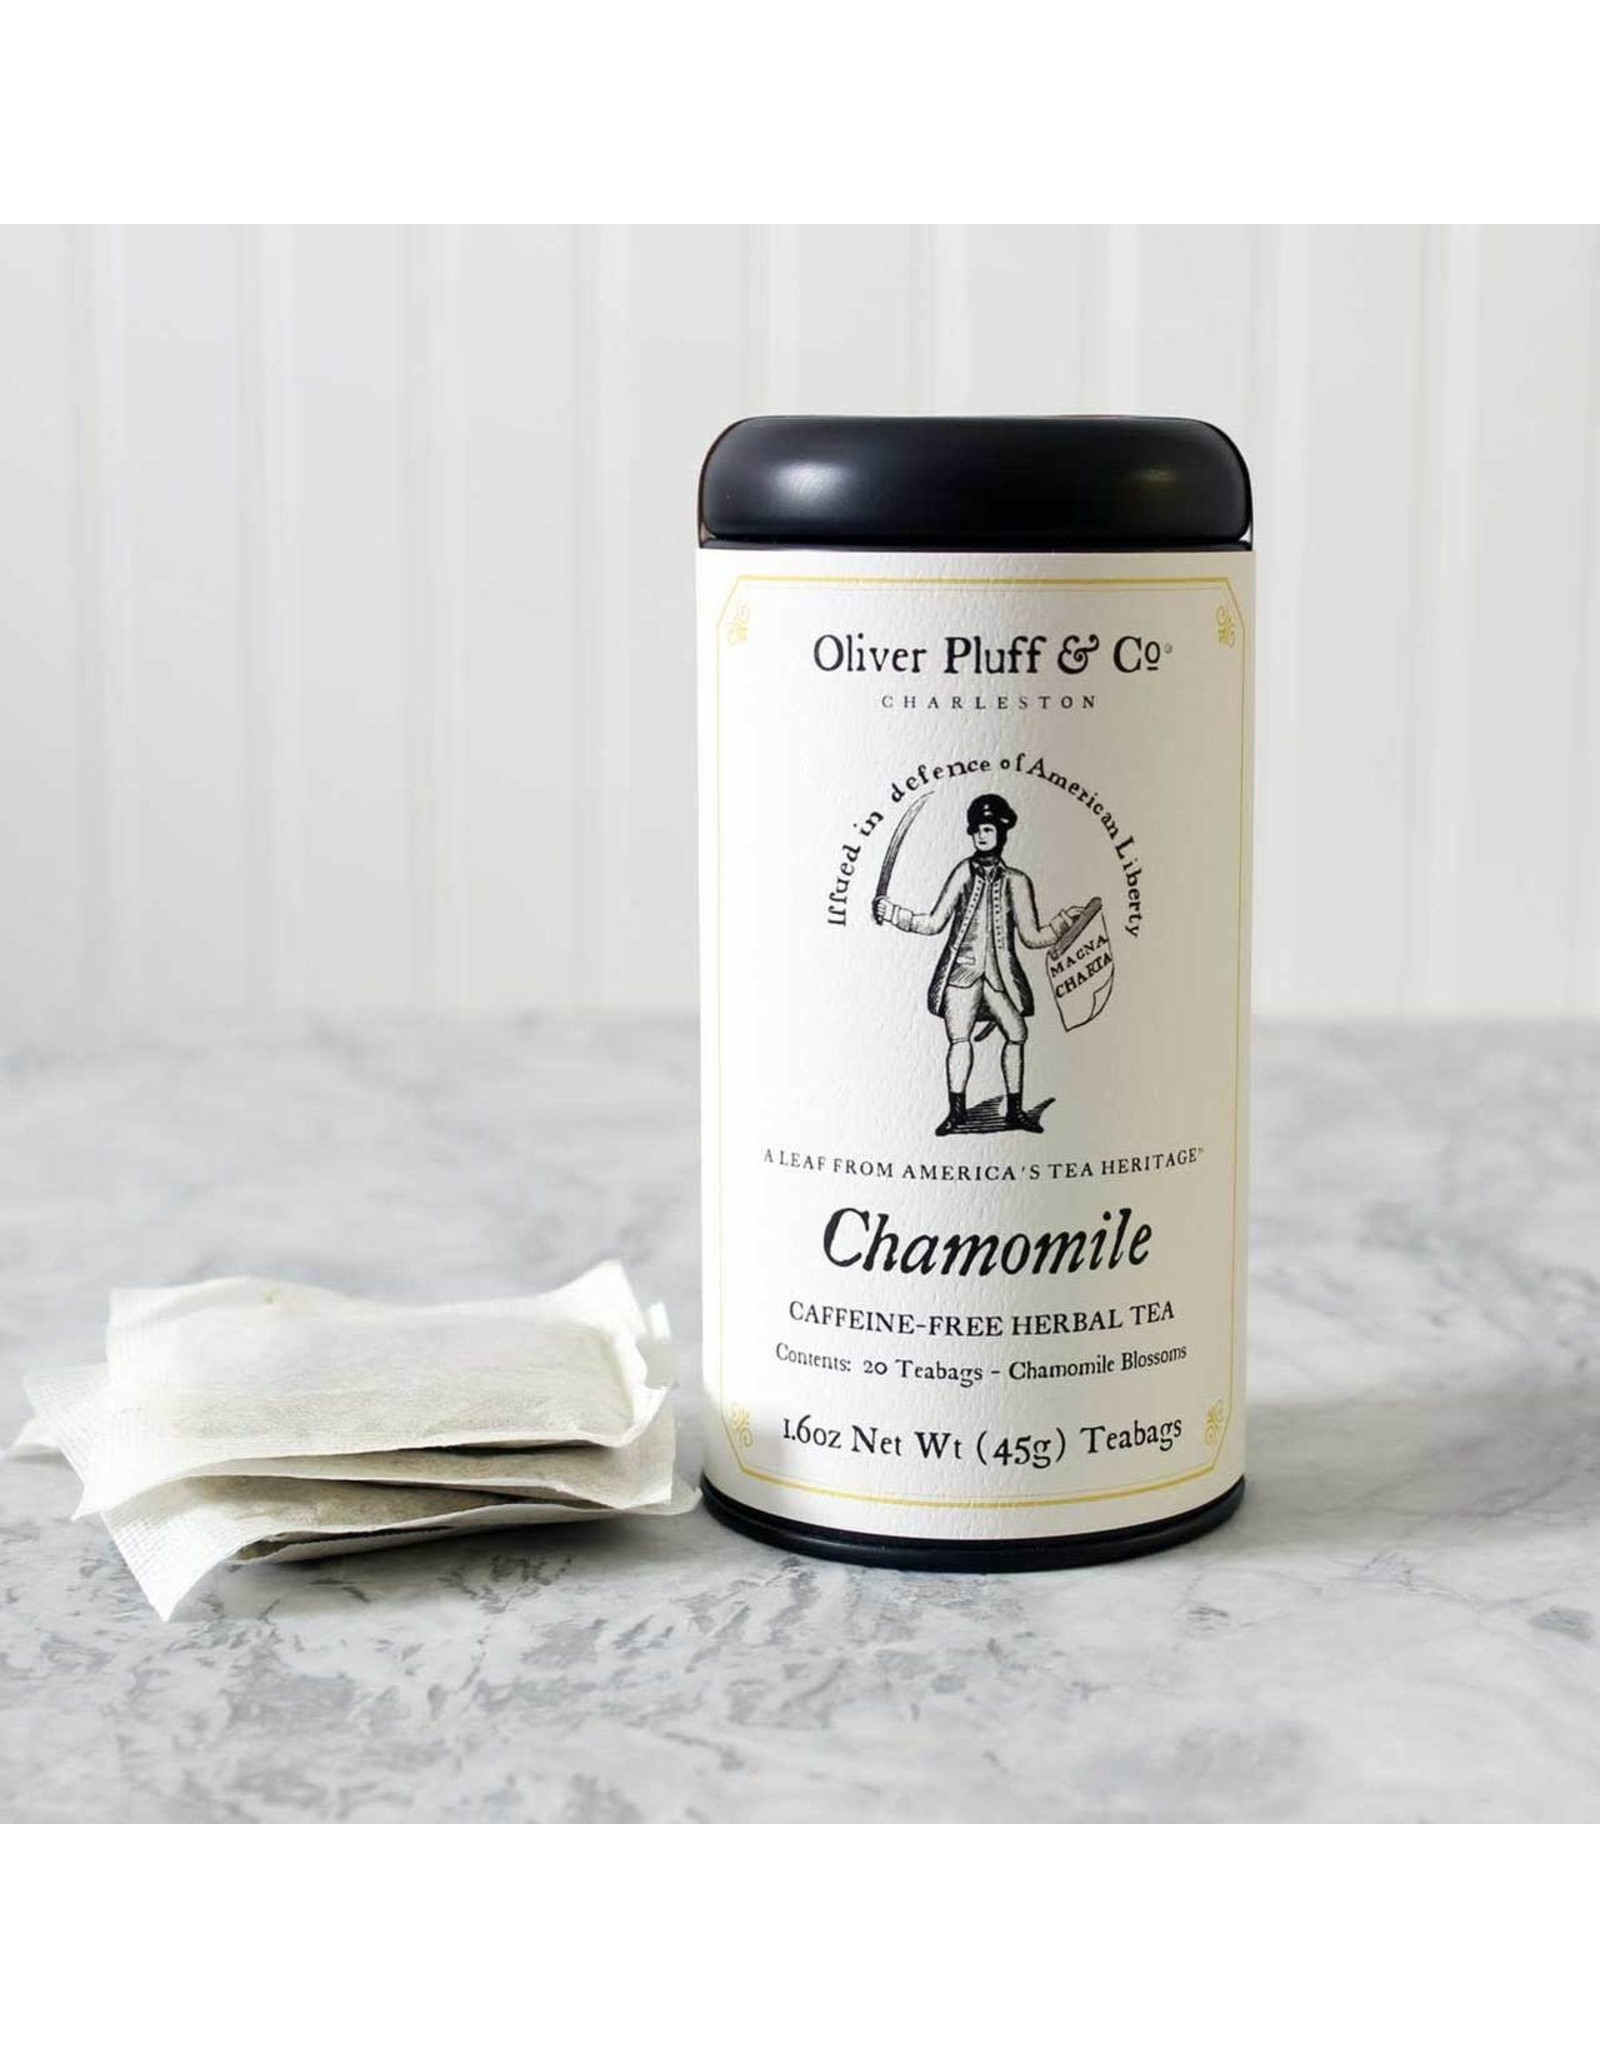 Oliver Pluff & Co Oliver Puff & Co Teas